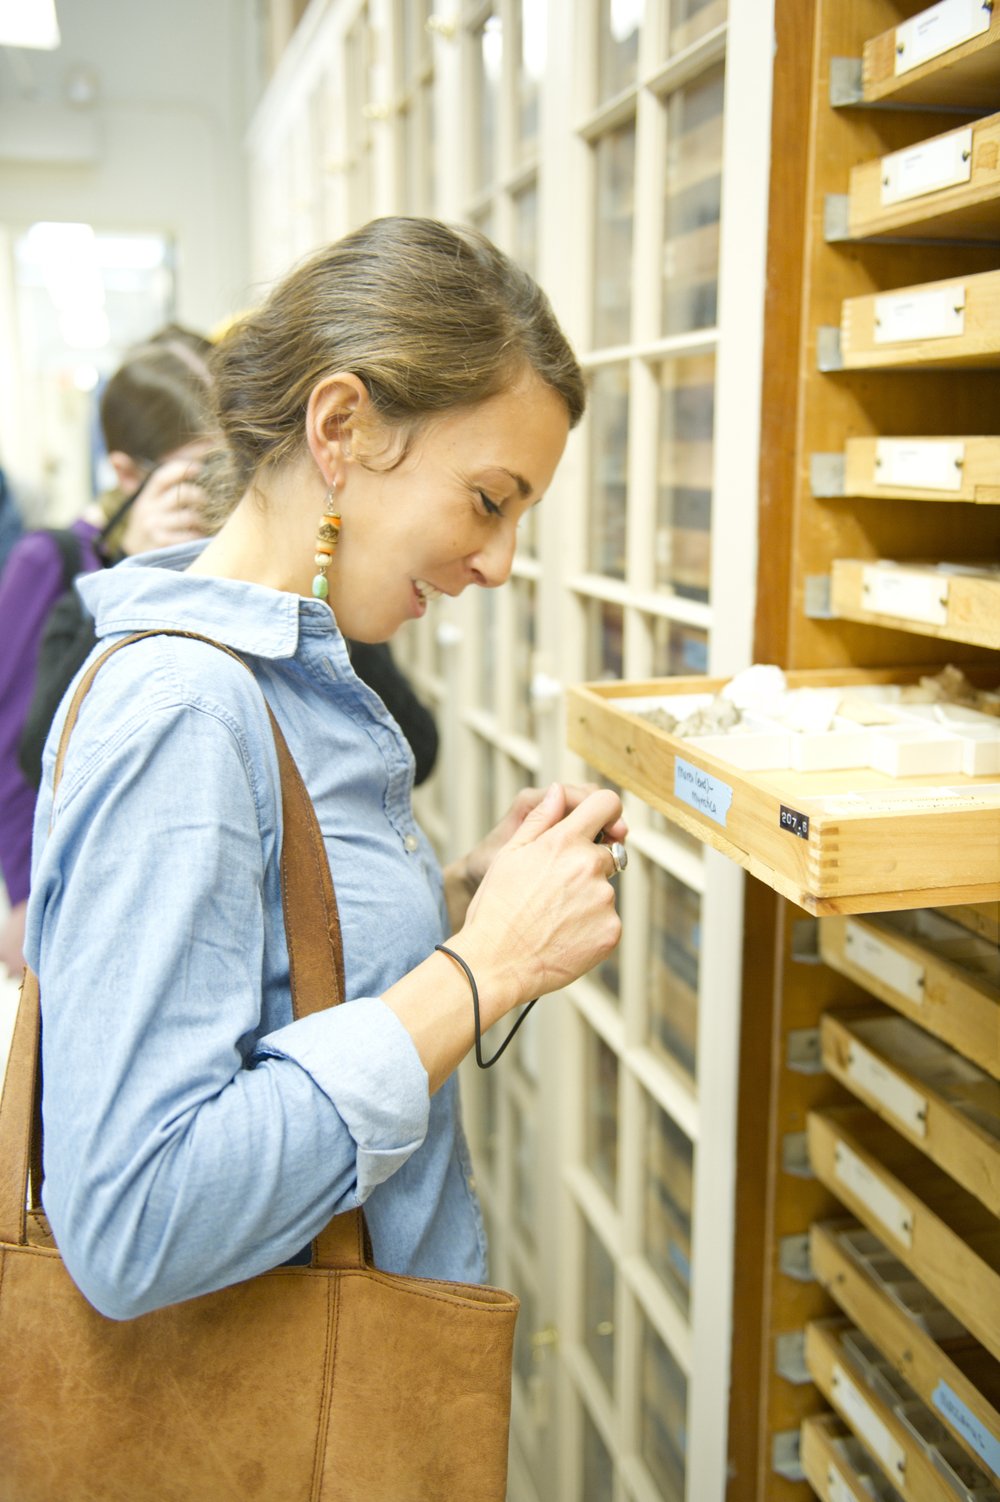 A member of the  Jenks Society for Lost Museums  investigates Agassiz specimen drawers at the Harvard Museum of Comparative Zoology. Image source at link.